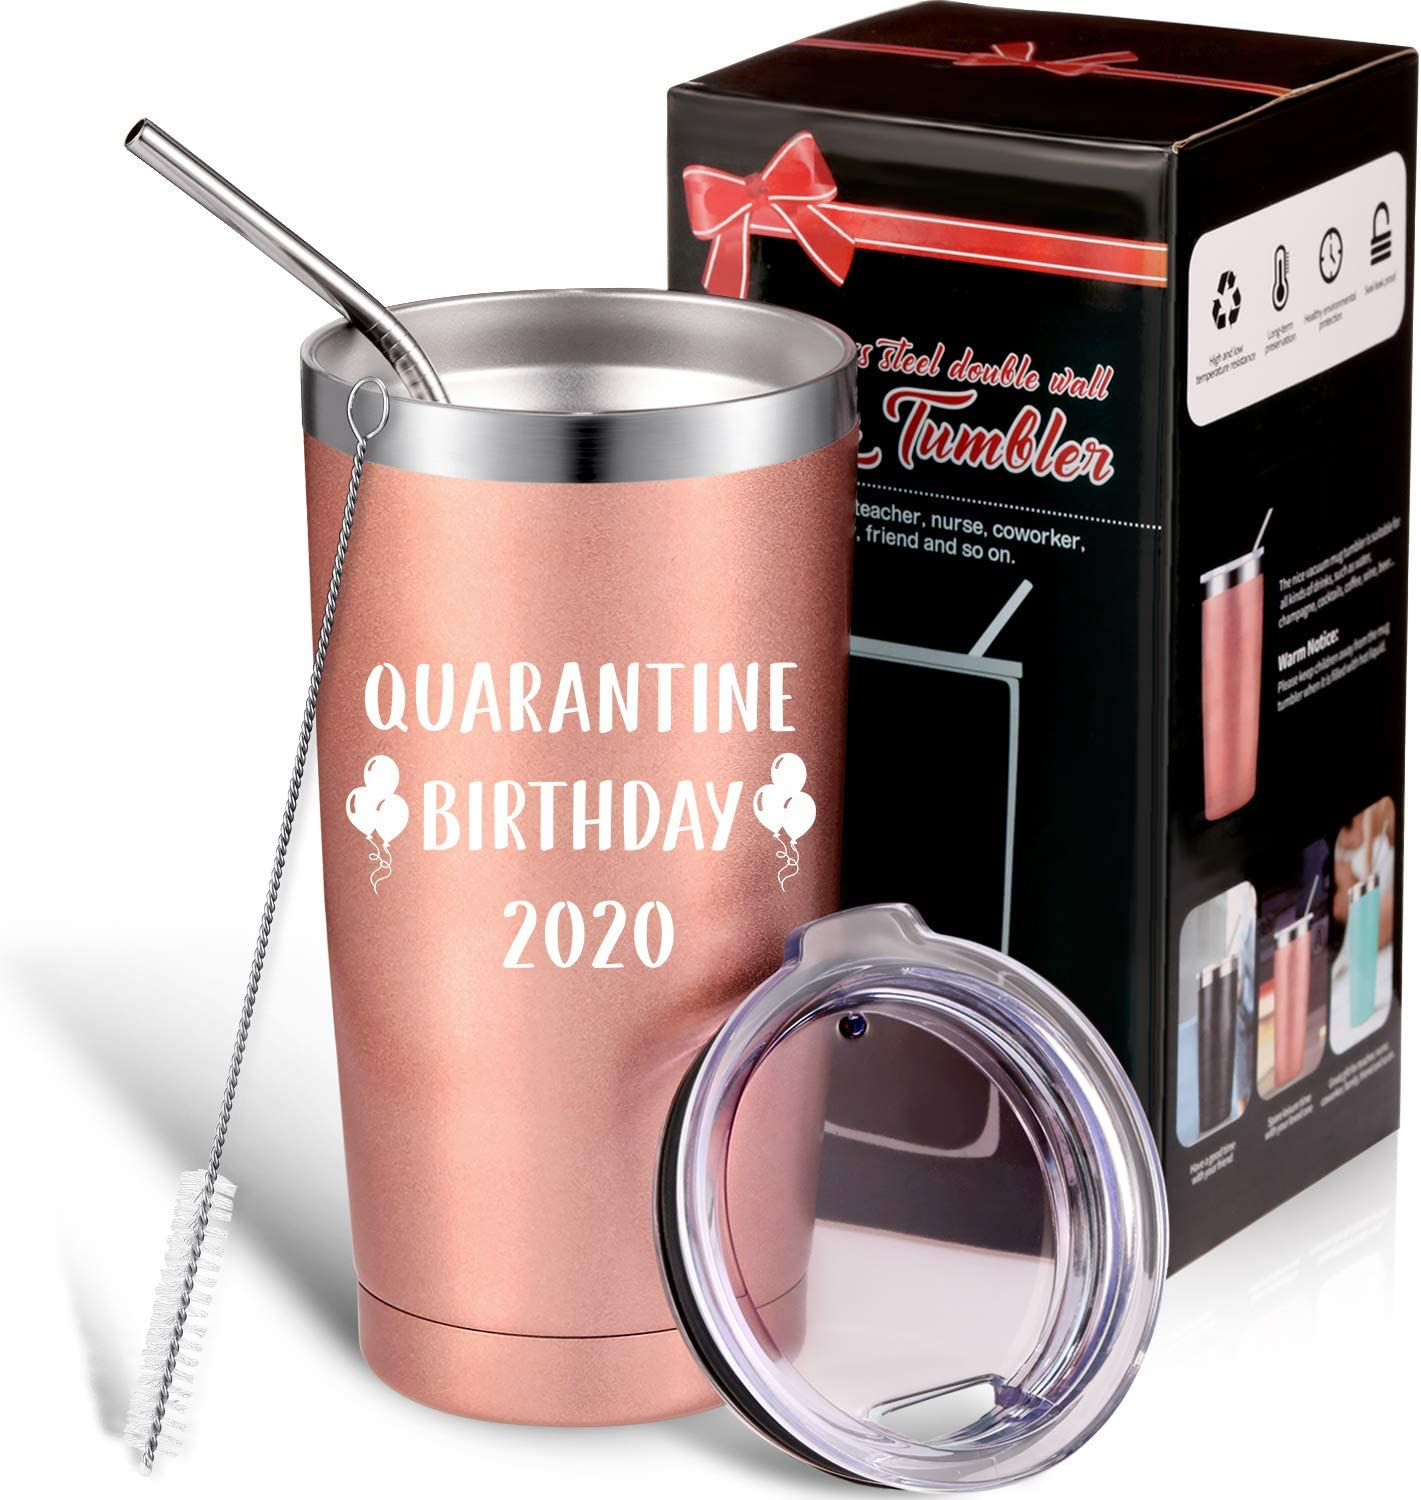 Quarantine Birthday 2020 Novelty Gift, Funny Birthday Cup Social Distance Quarantine Birthday Present for Women Men, 20 oz Stainless Steel Vacuum Insulated Mug Tumbler with Straw Brush and Lid